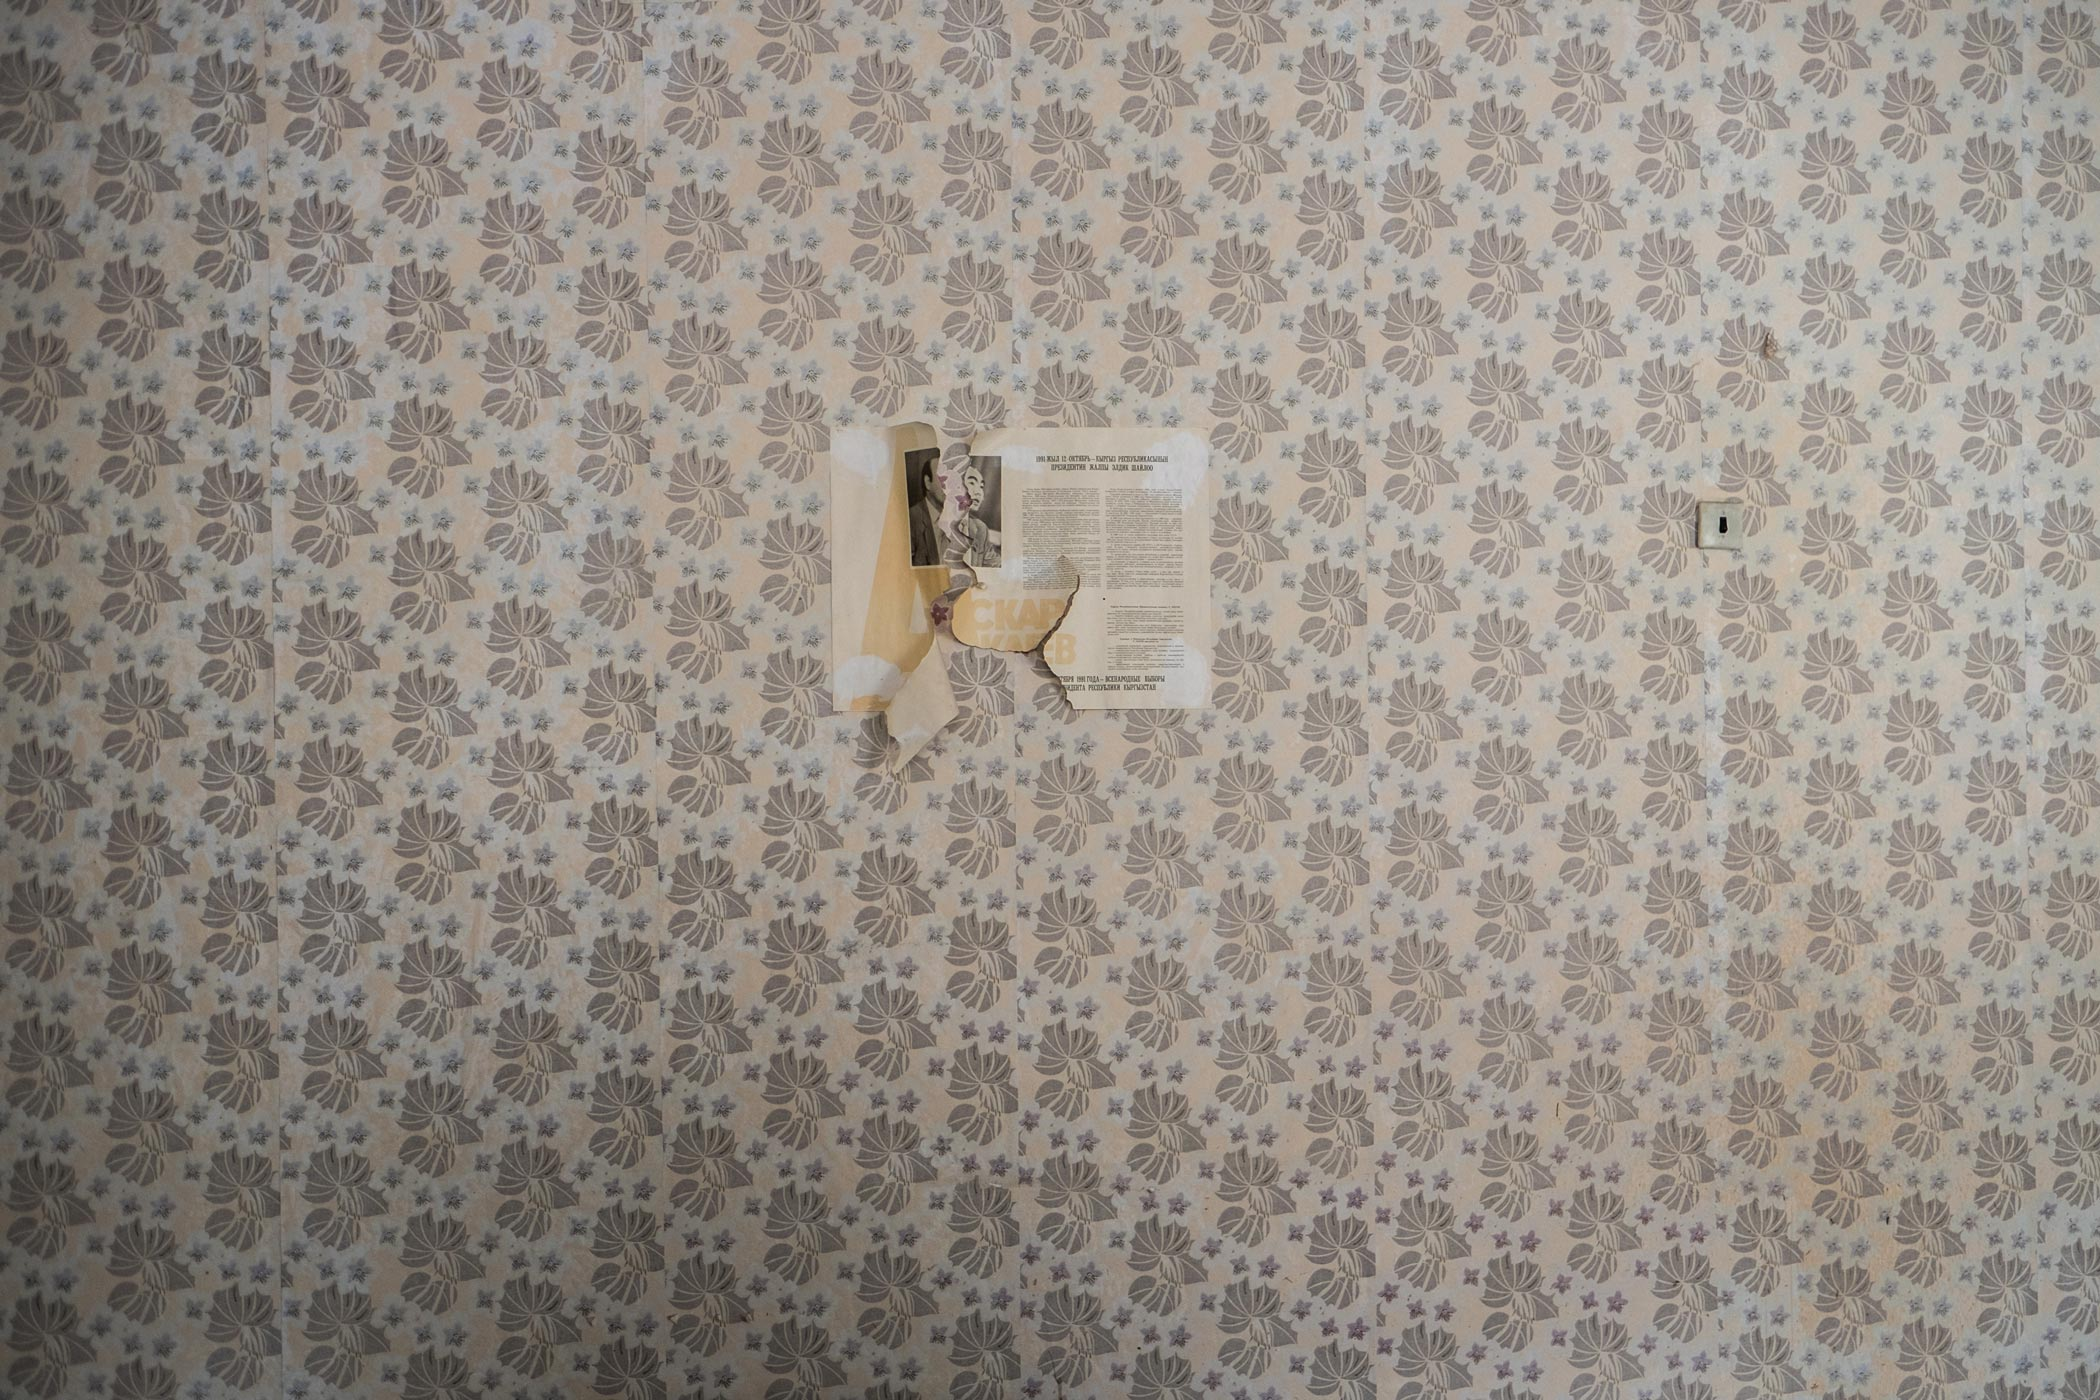 A wall of faded, patterned wallpaper with a newspaper cutting pasted on it in Min Kush, Kyrgyzstan